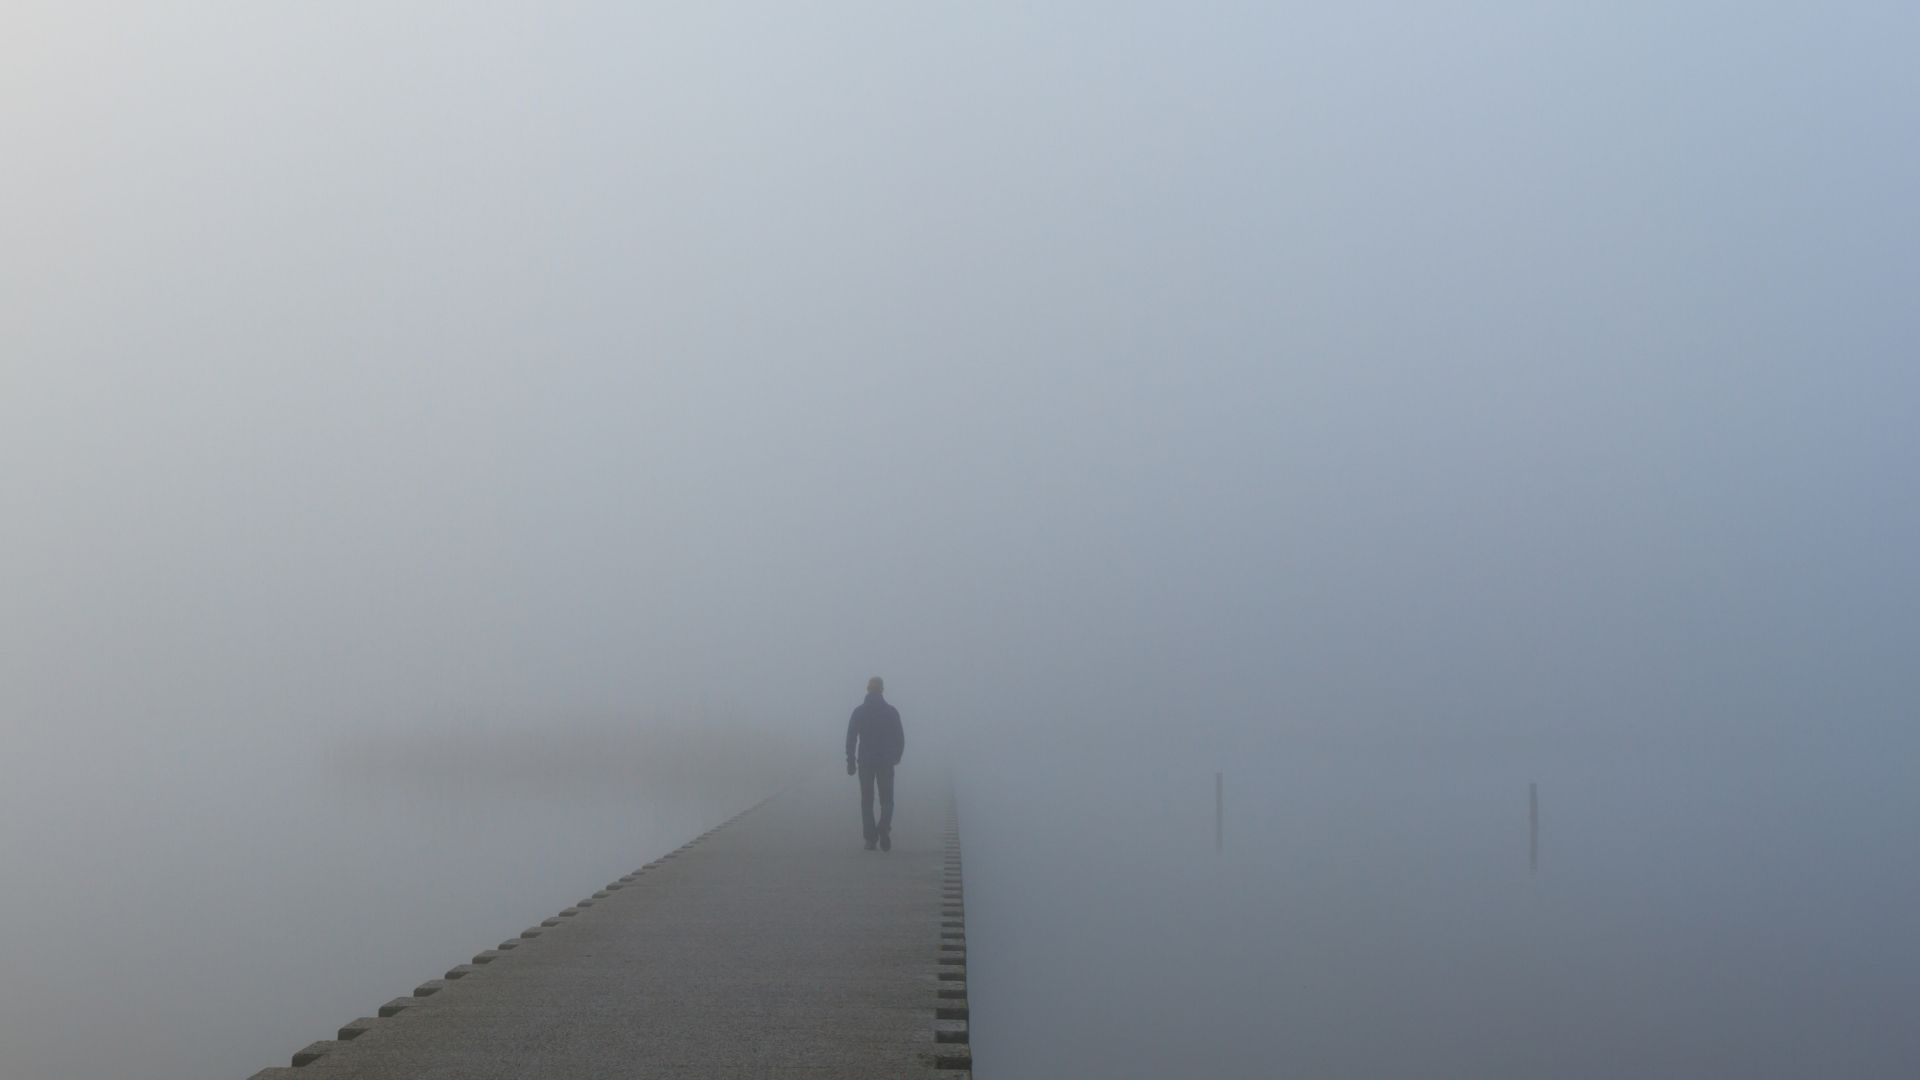 Michalakis and the 'fog' of COVID-19